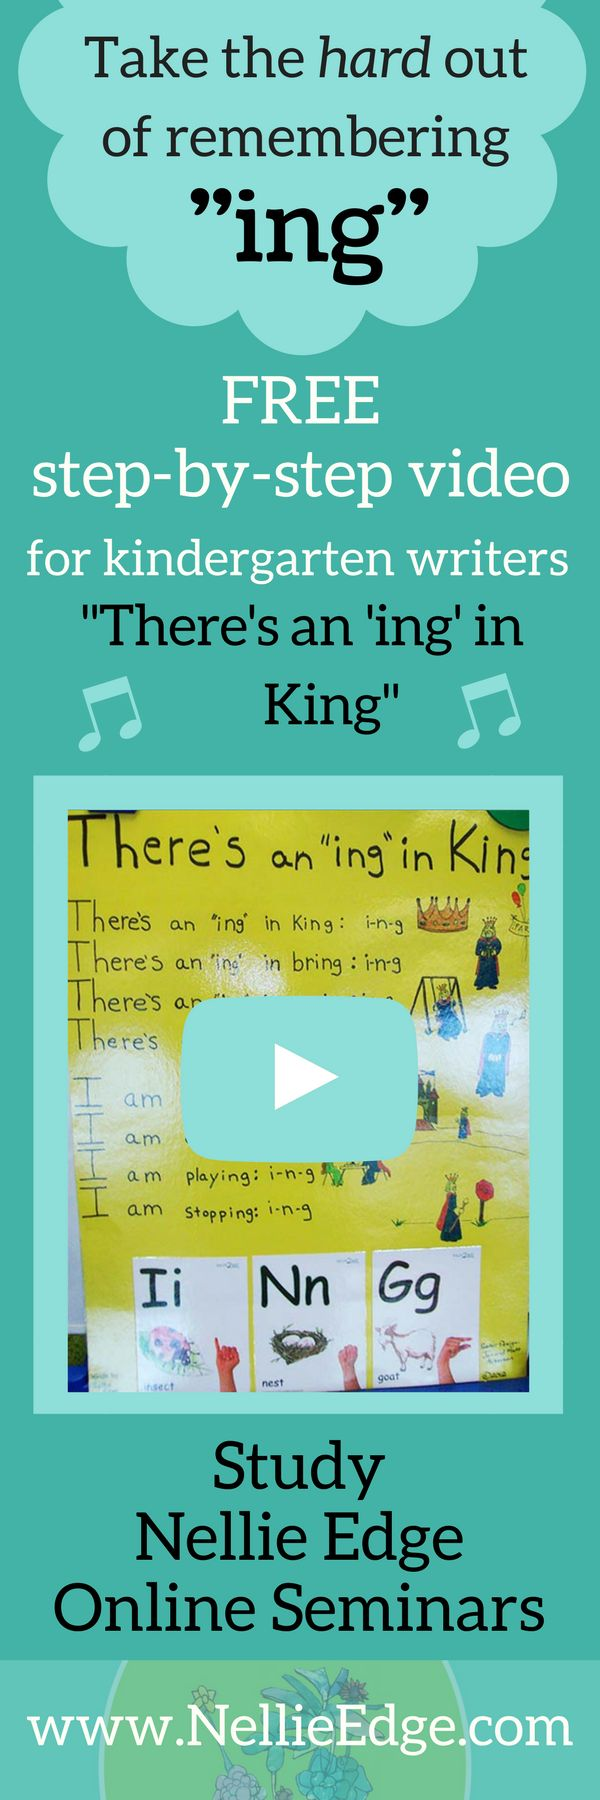 Worksheet Learn Phonics Online 456 best kindergarten phonics images on pinterest make learning easy and fun teach the king of ing